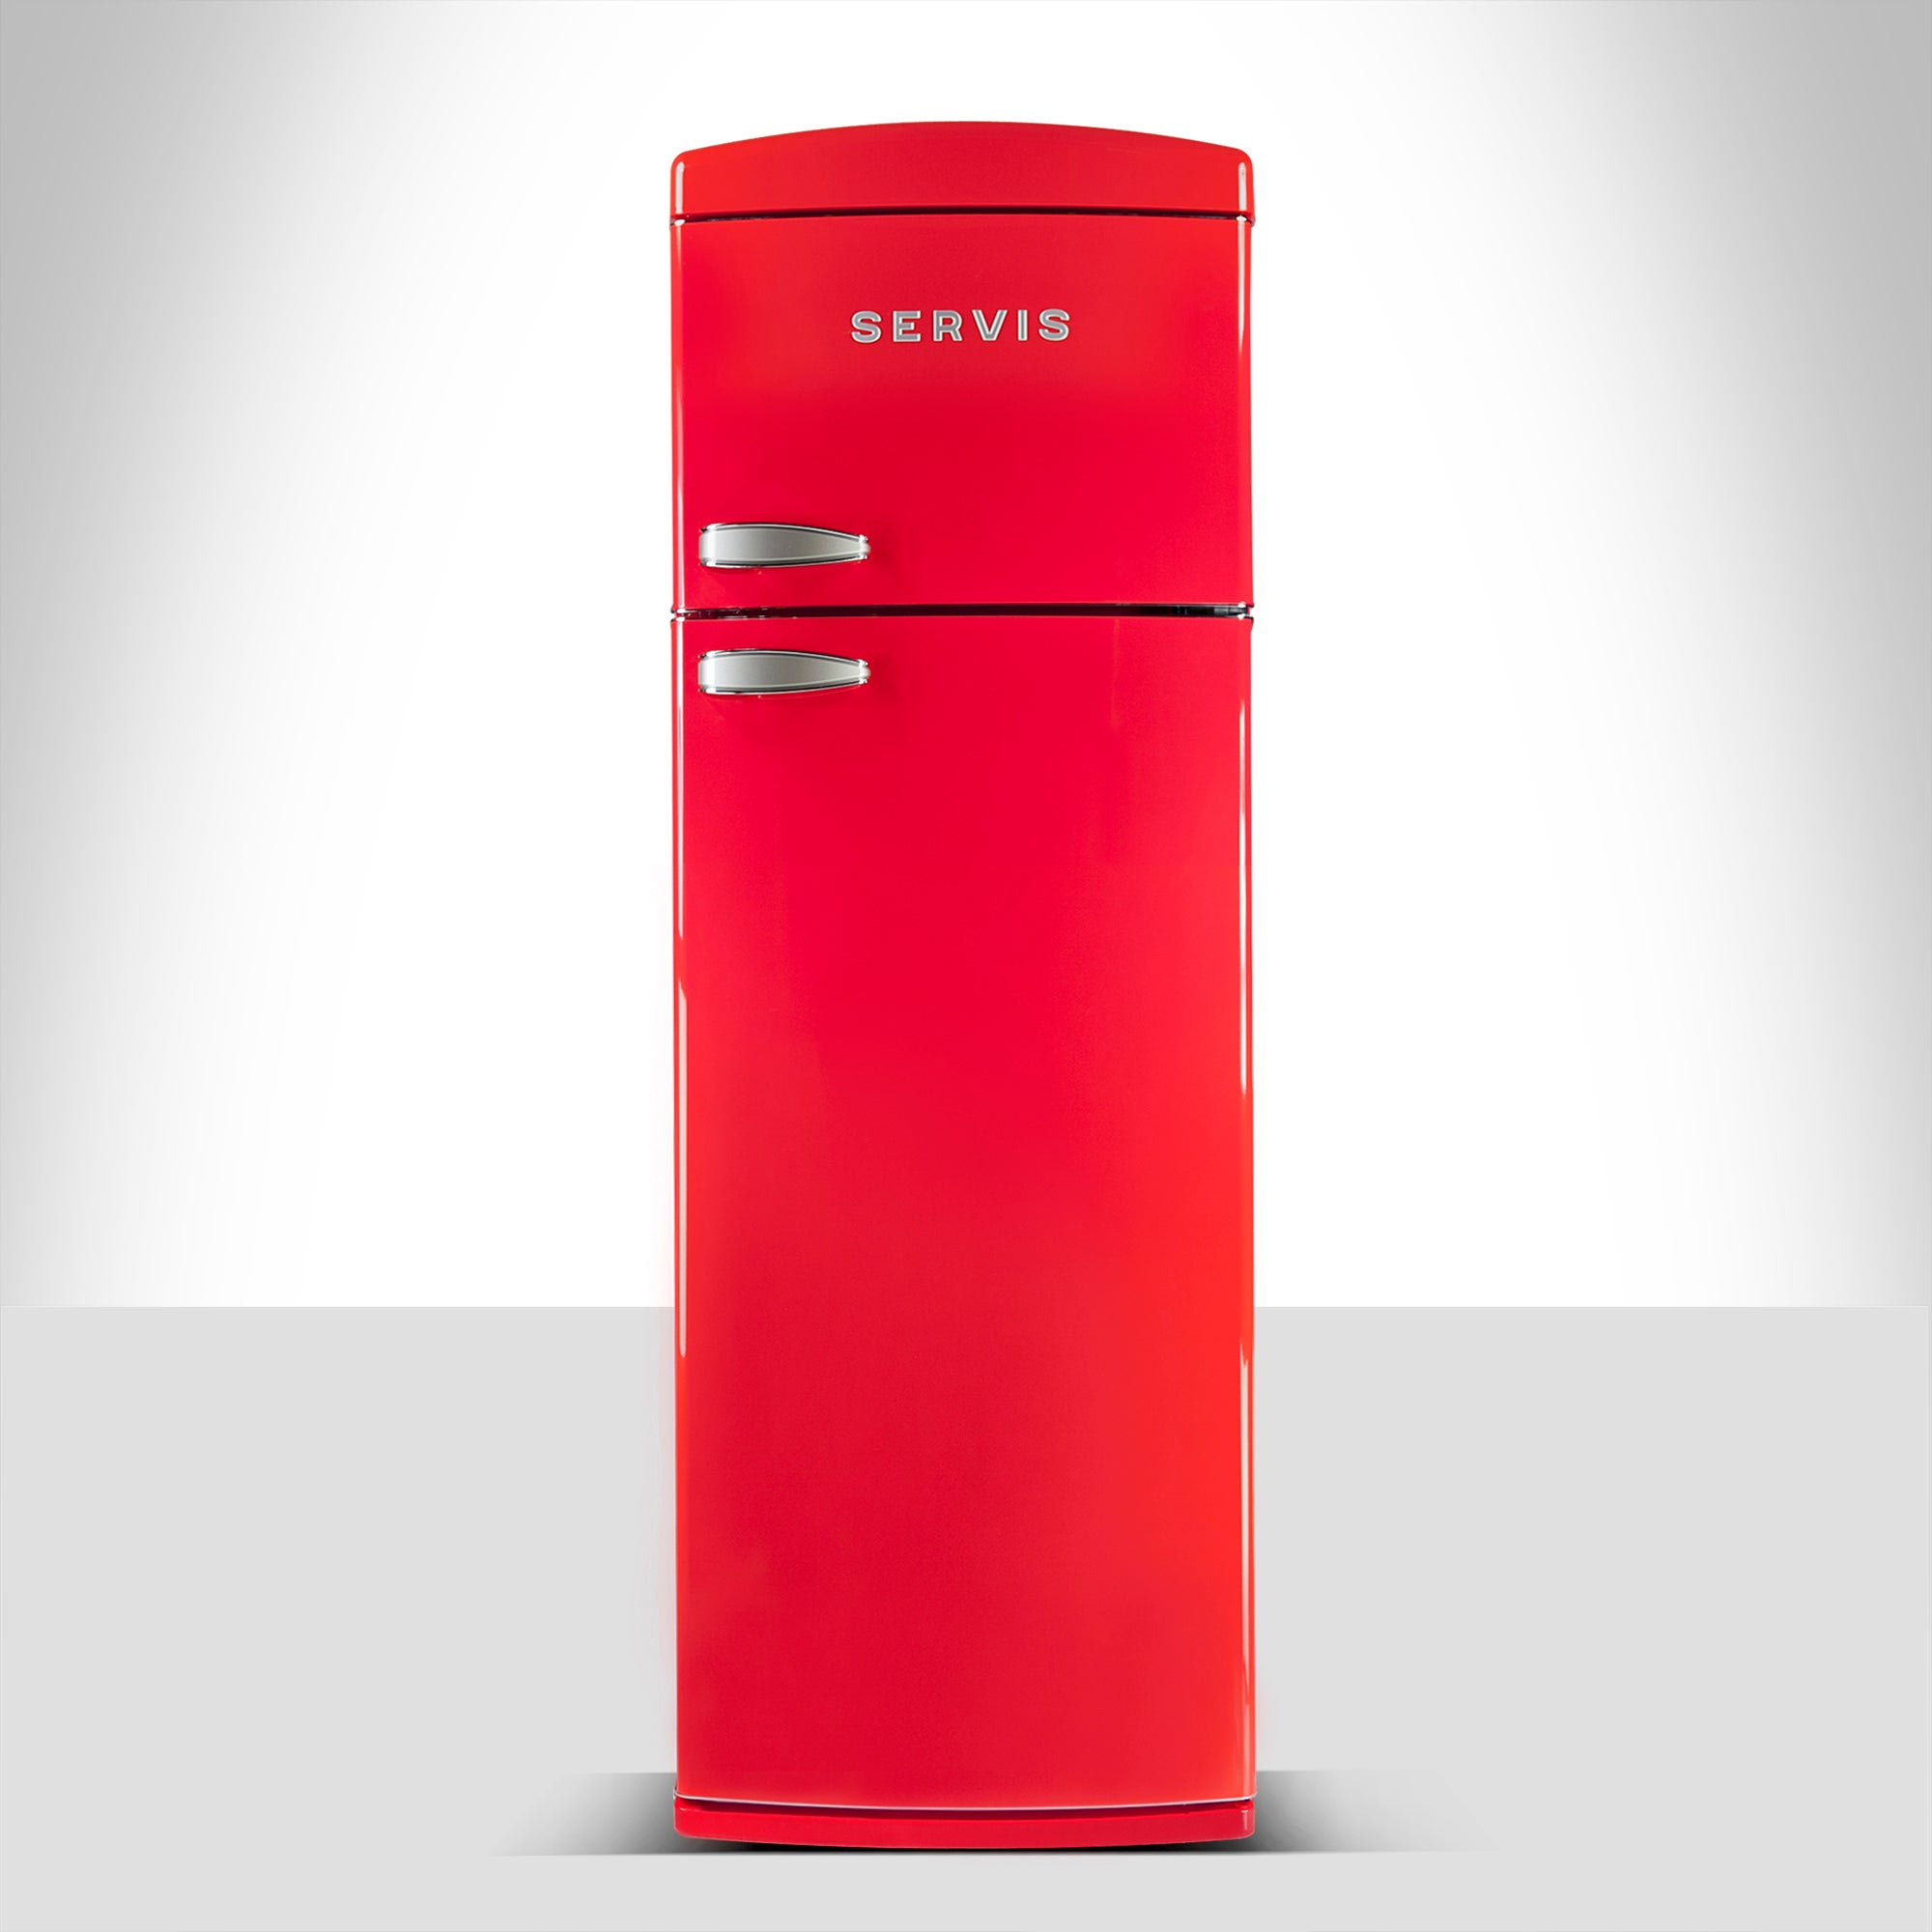 Servis T60170R Red Retro Style Topmount Fridge Freezer Red